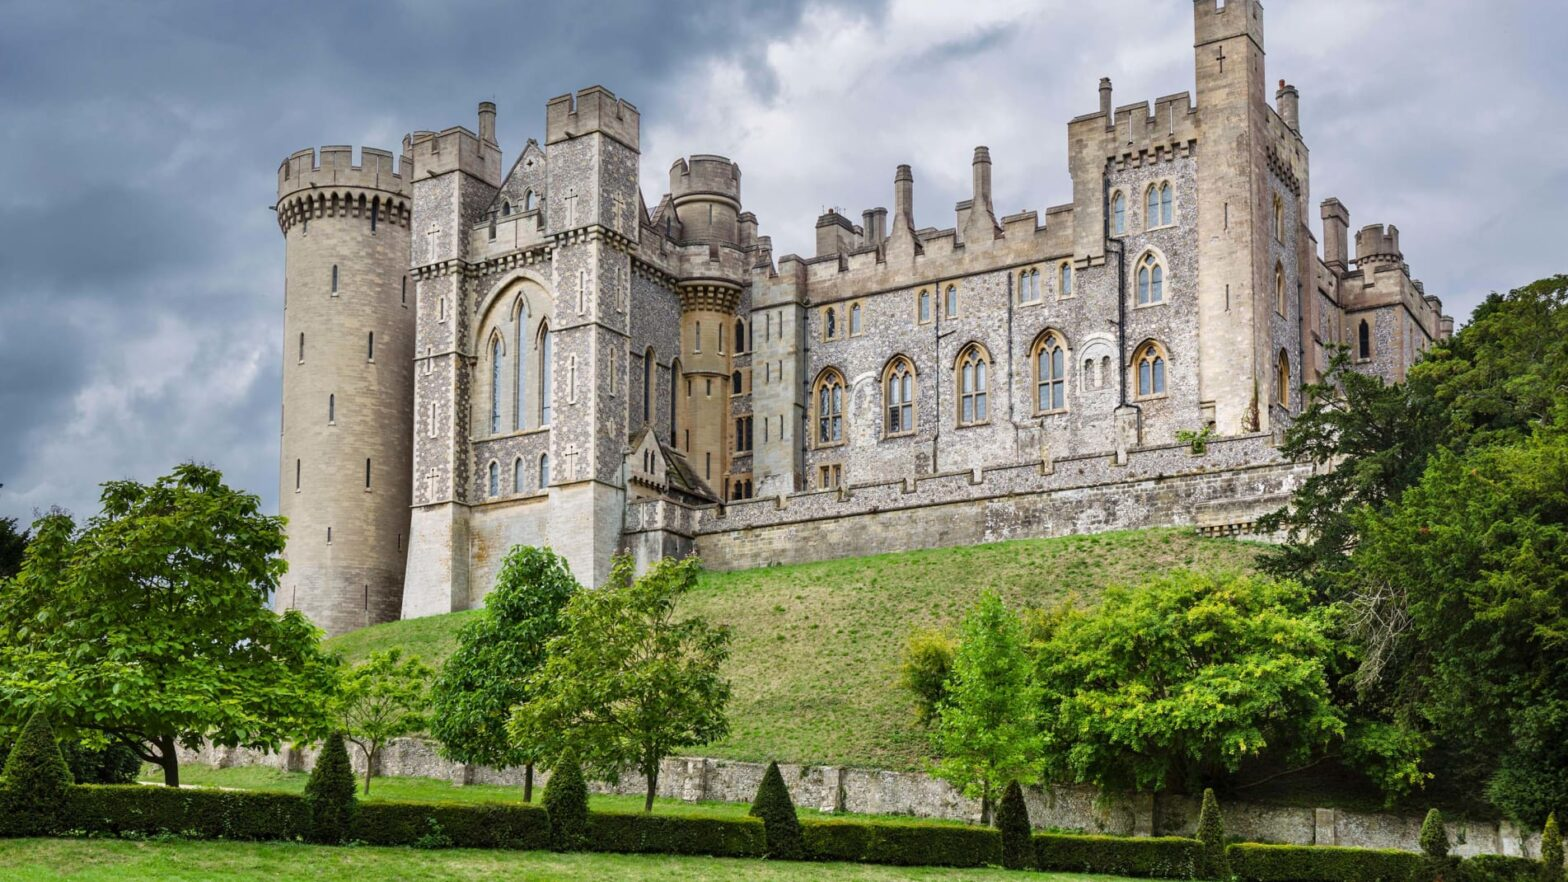 'Irreplaceable' artifacts worth more than $1.4 million stolen from English castle